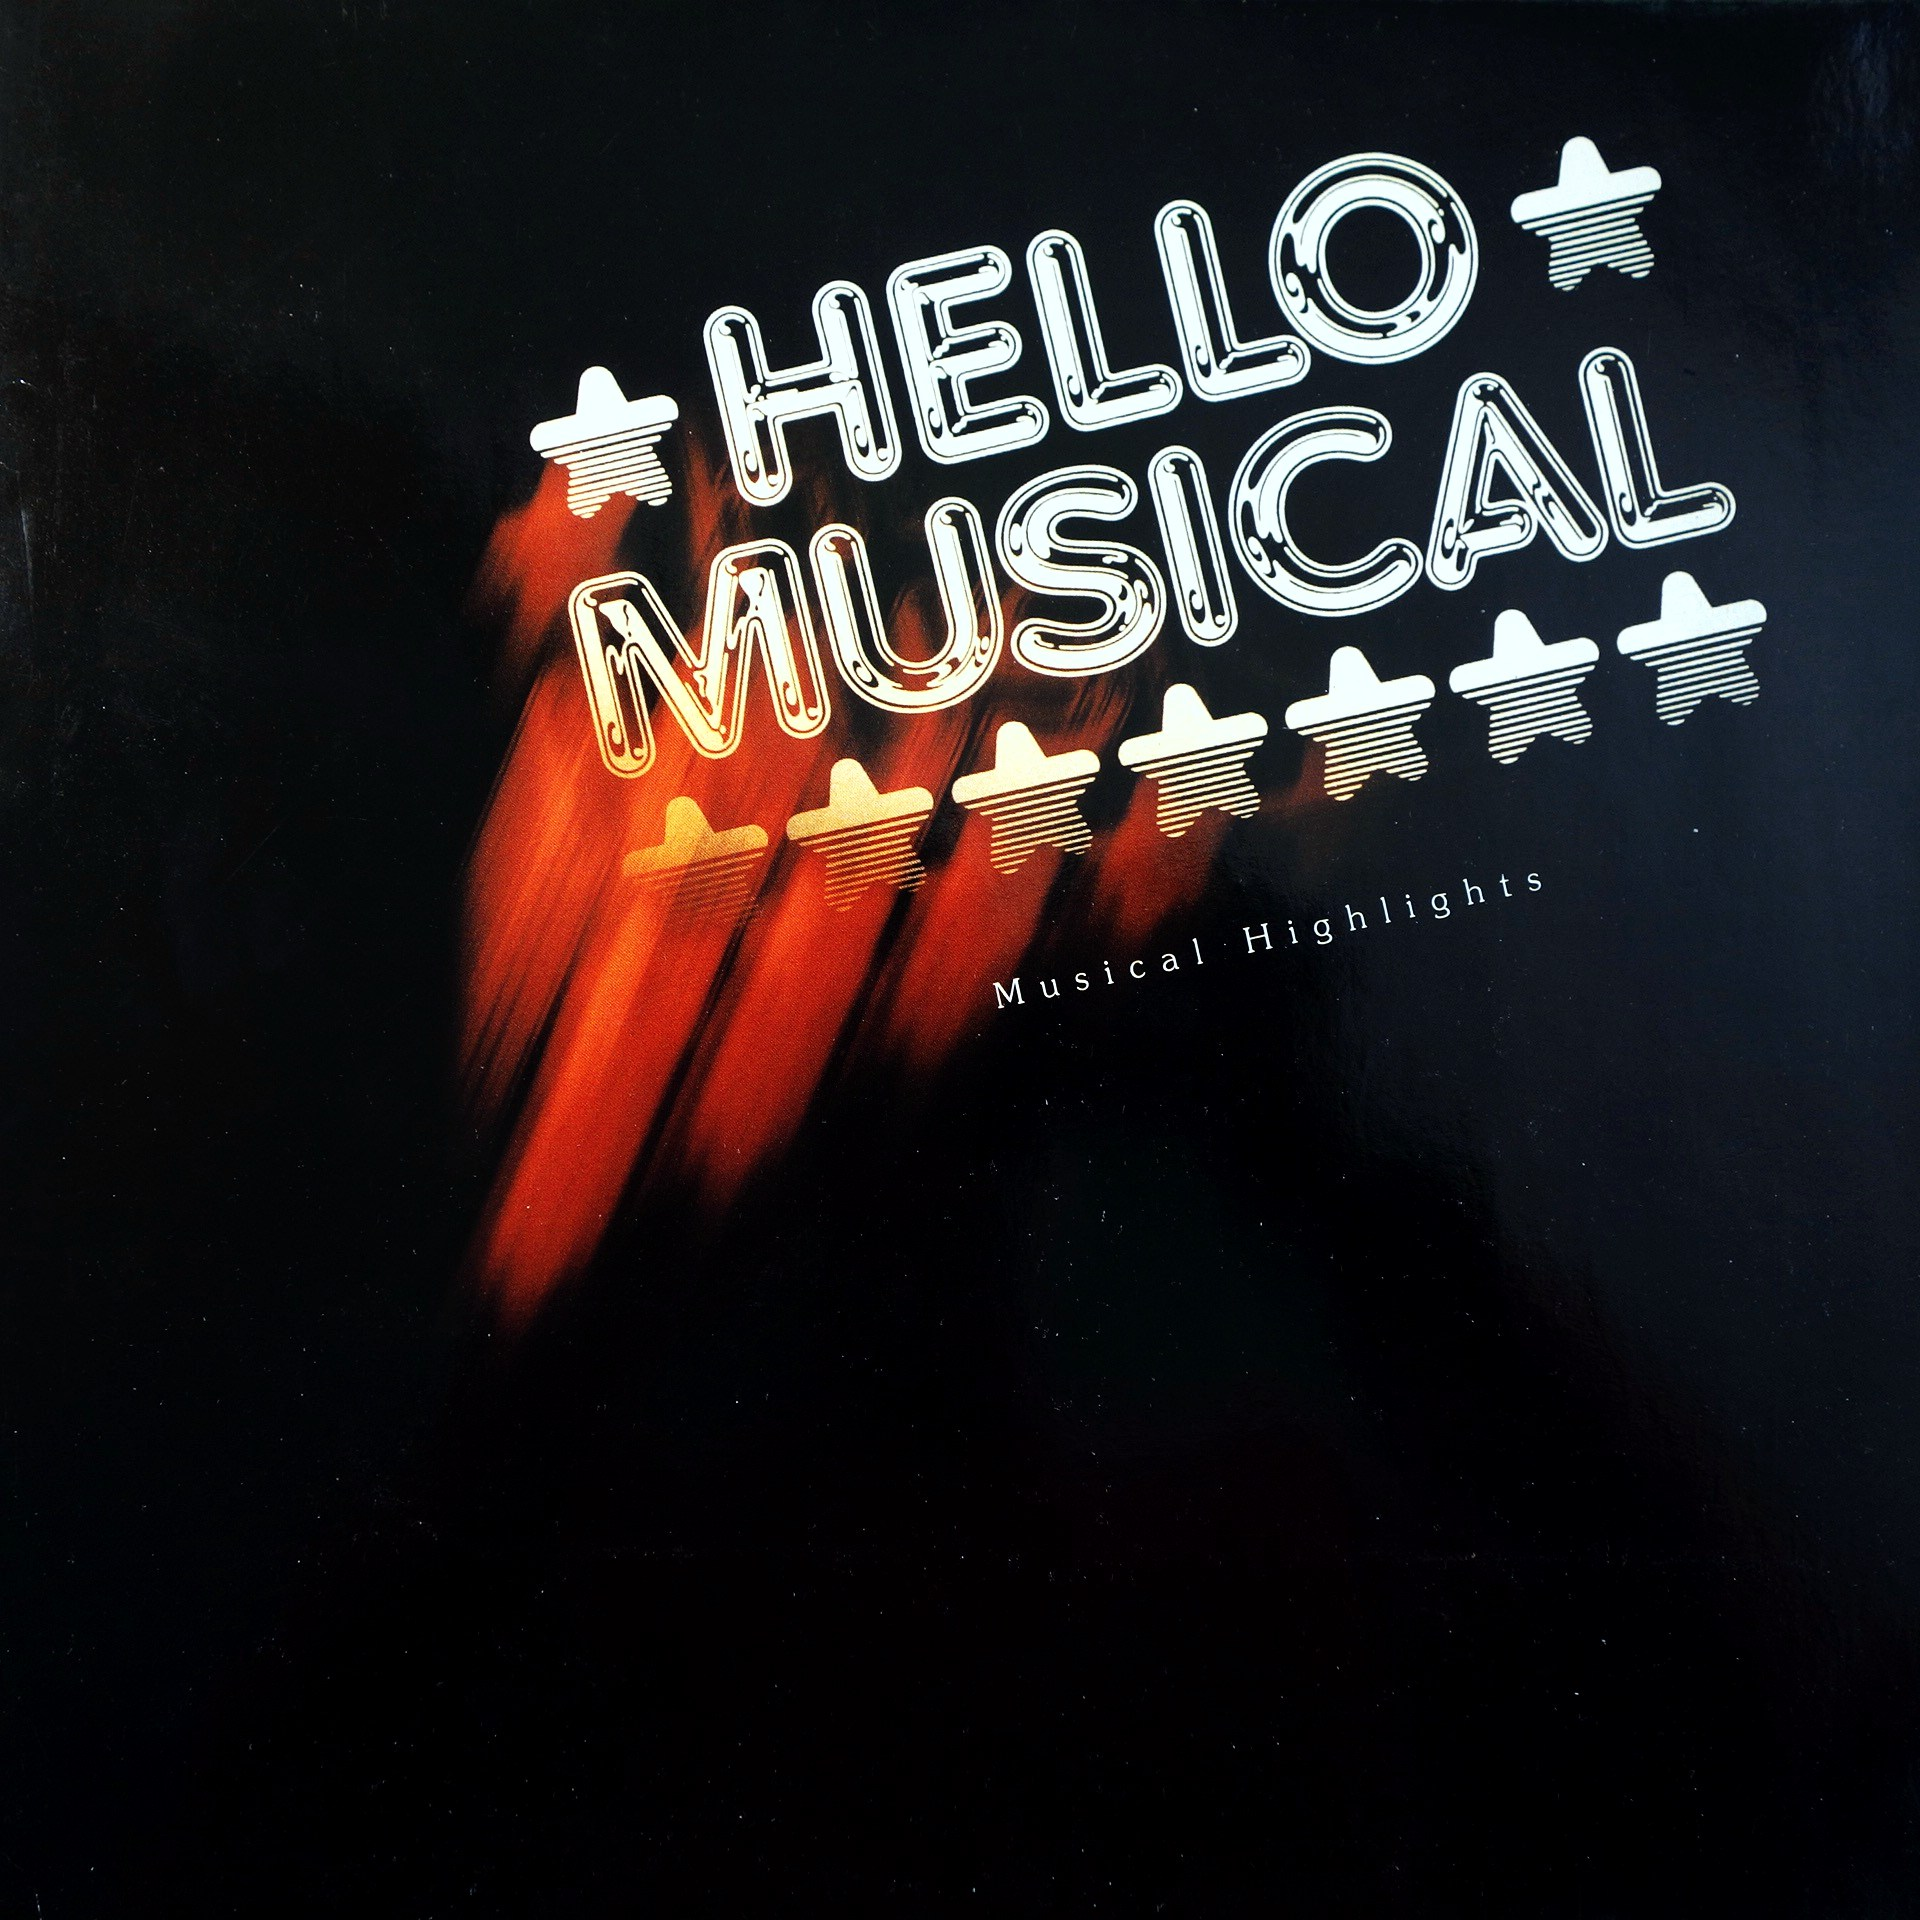 LP Hello Musical - Musical Highlights